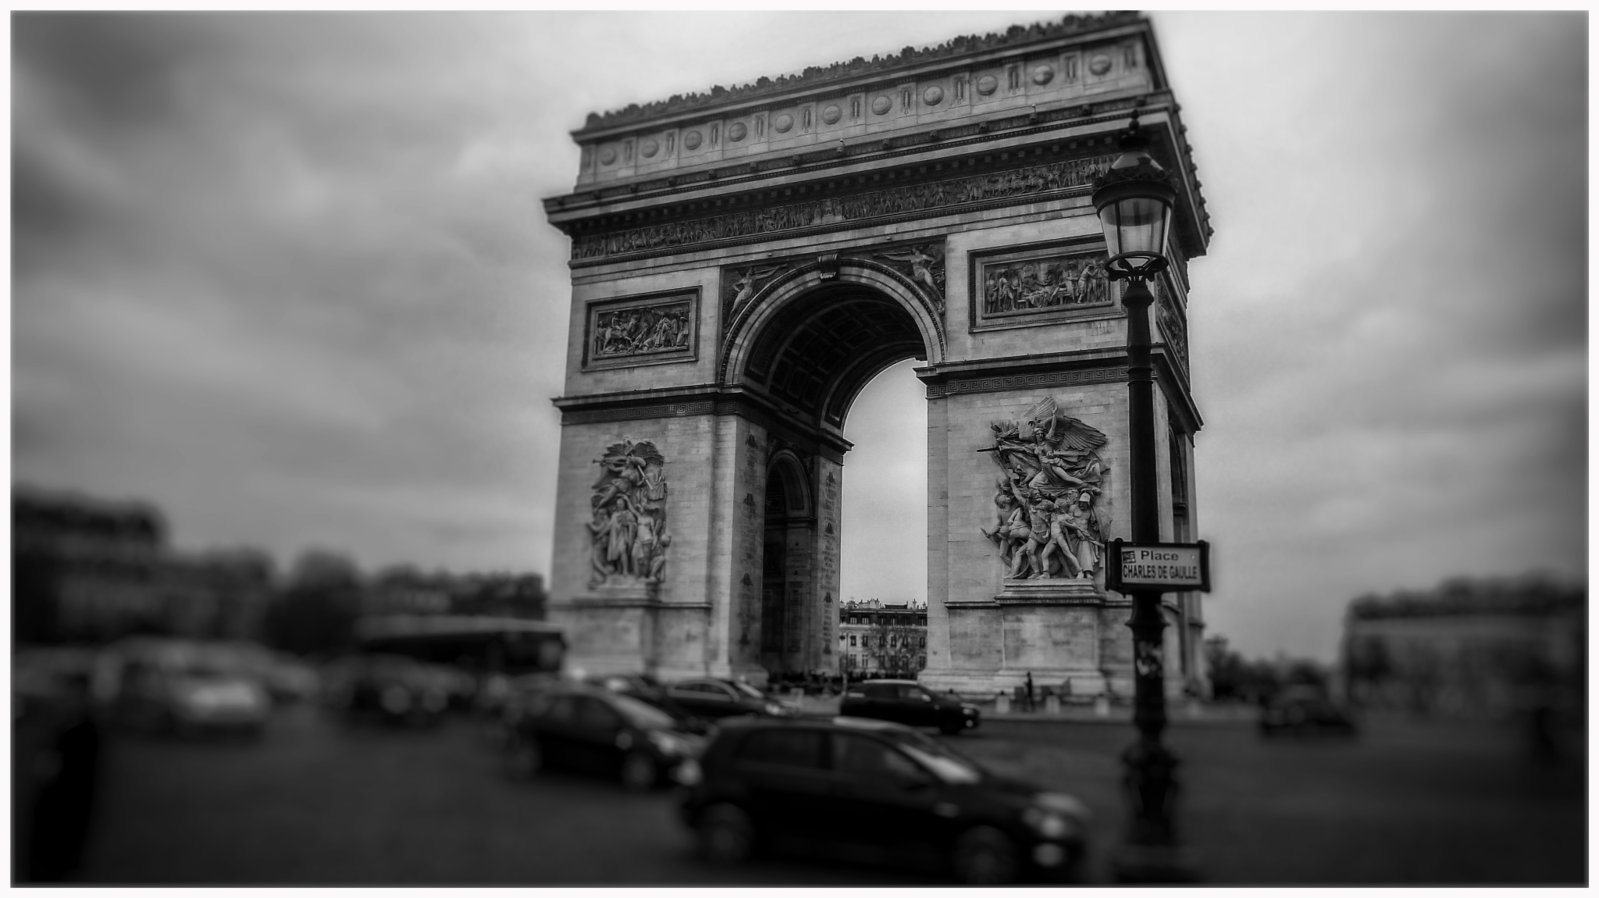 arc de triomphe de l 39 toile place charles de gaulle. Black Bedroom Furniture Sets. Home Design Ideas